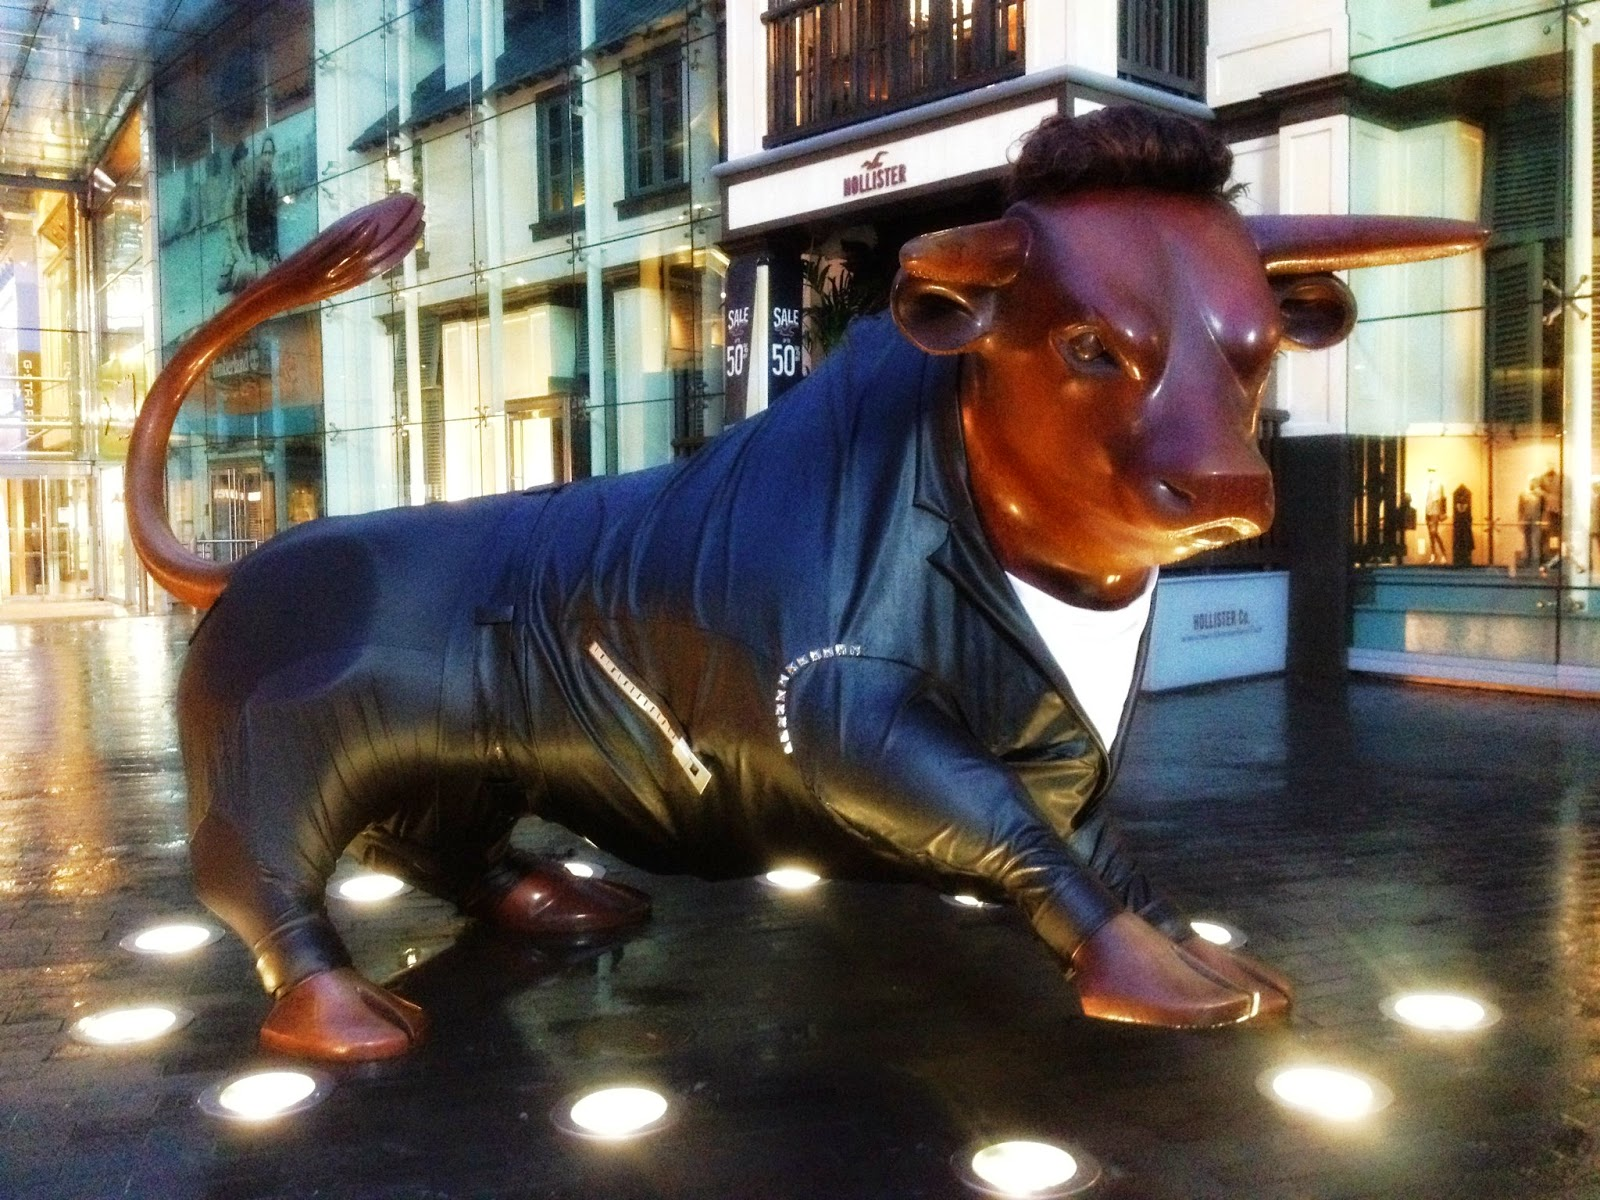 The Bull Birmingham wearing a leather jacket